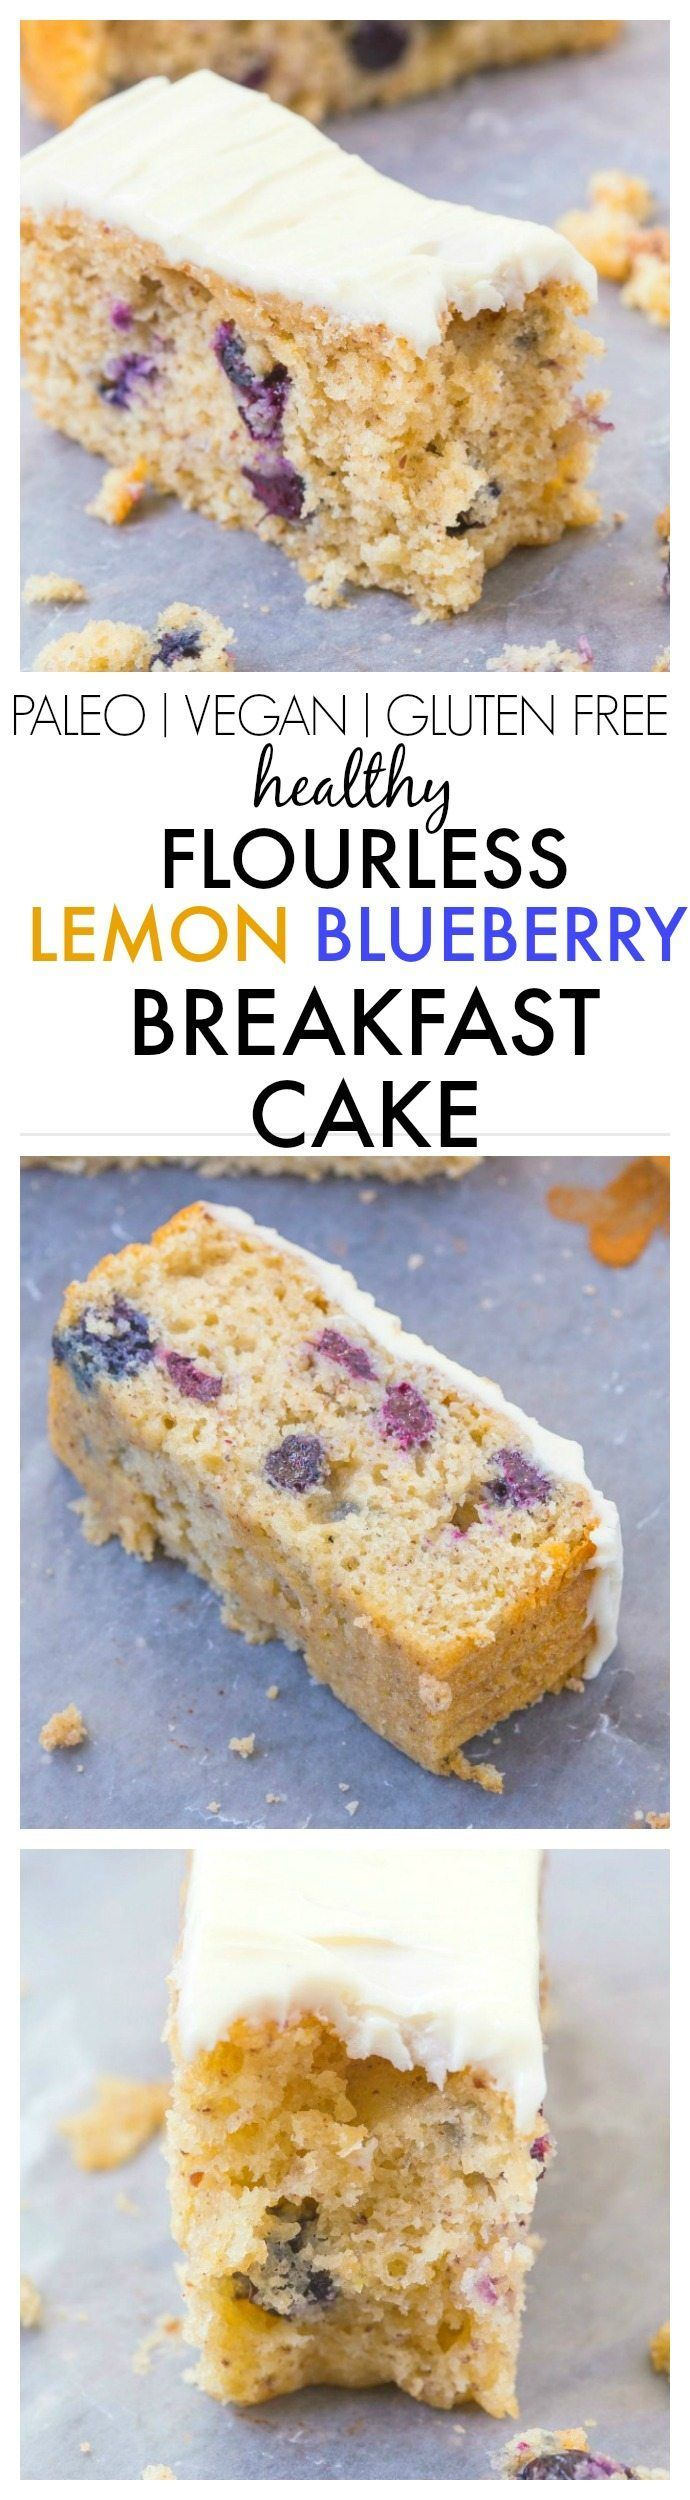 Healthy Flourless Lemon and Blueberry Breakfast Cake- Light and fluffy on the inside, tender on the outside with a hint of citrus; have a guilt free dessert for breakfast- NO butter, oil, flour or sugar! {vegan, gluten free, paleo recipe}- http://thebigmansworld.com